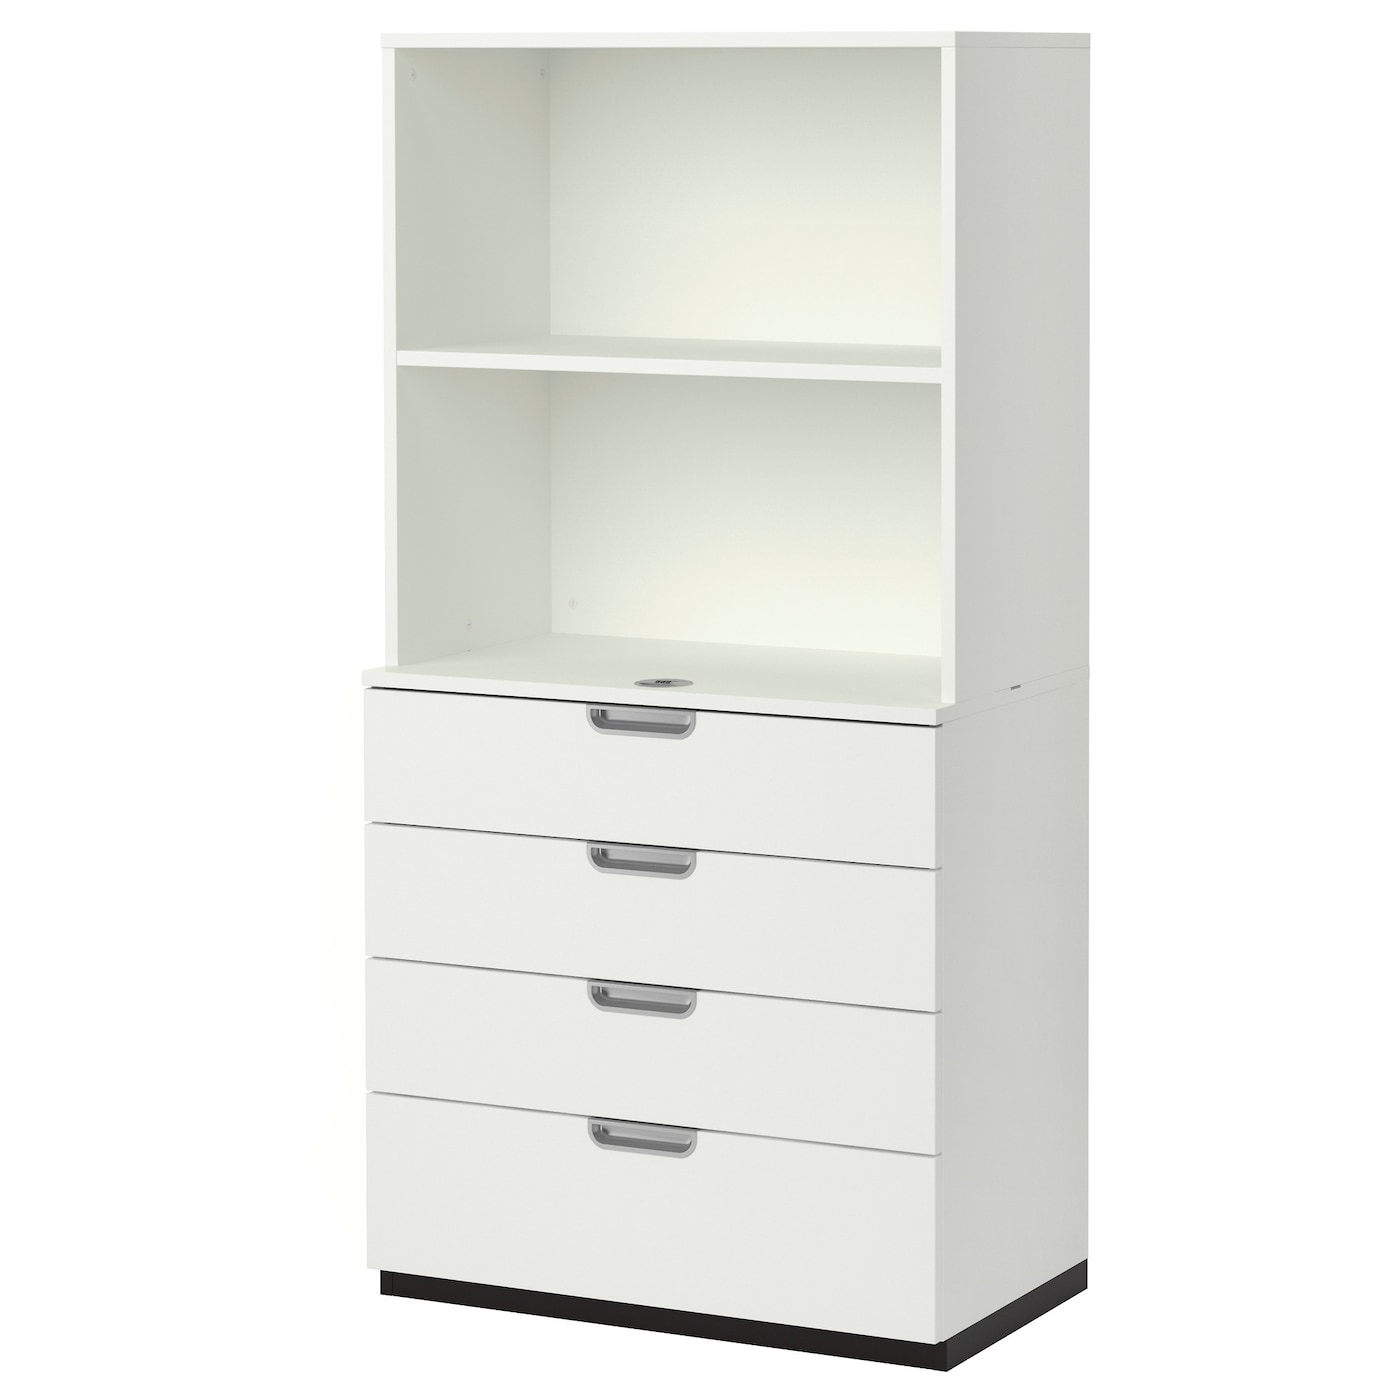 ikea storage cabinets galant storage combination with drawers white 80 x 160 cm 29806